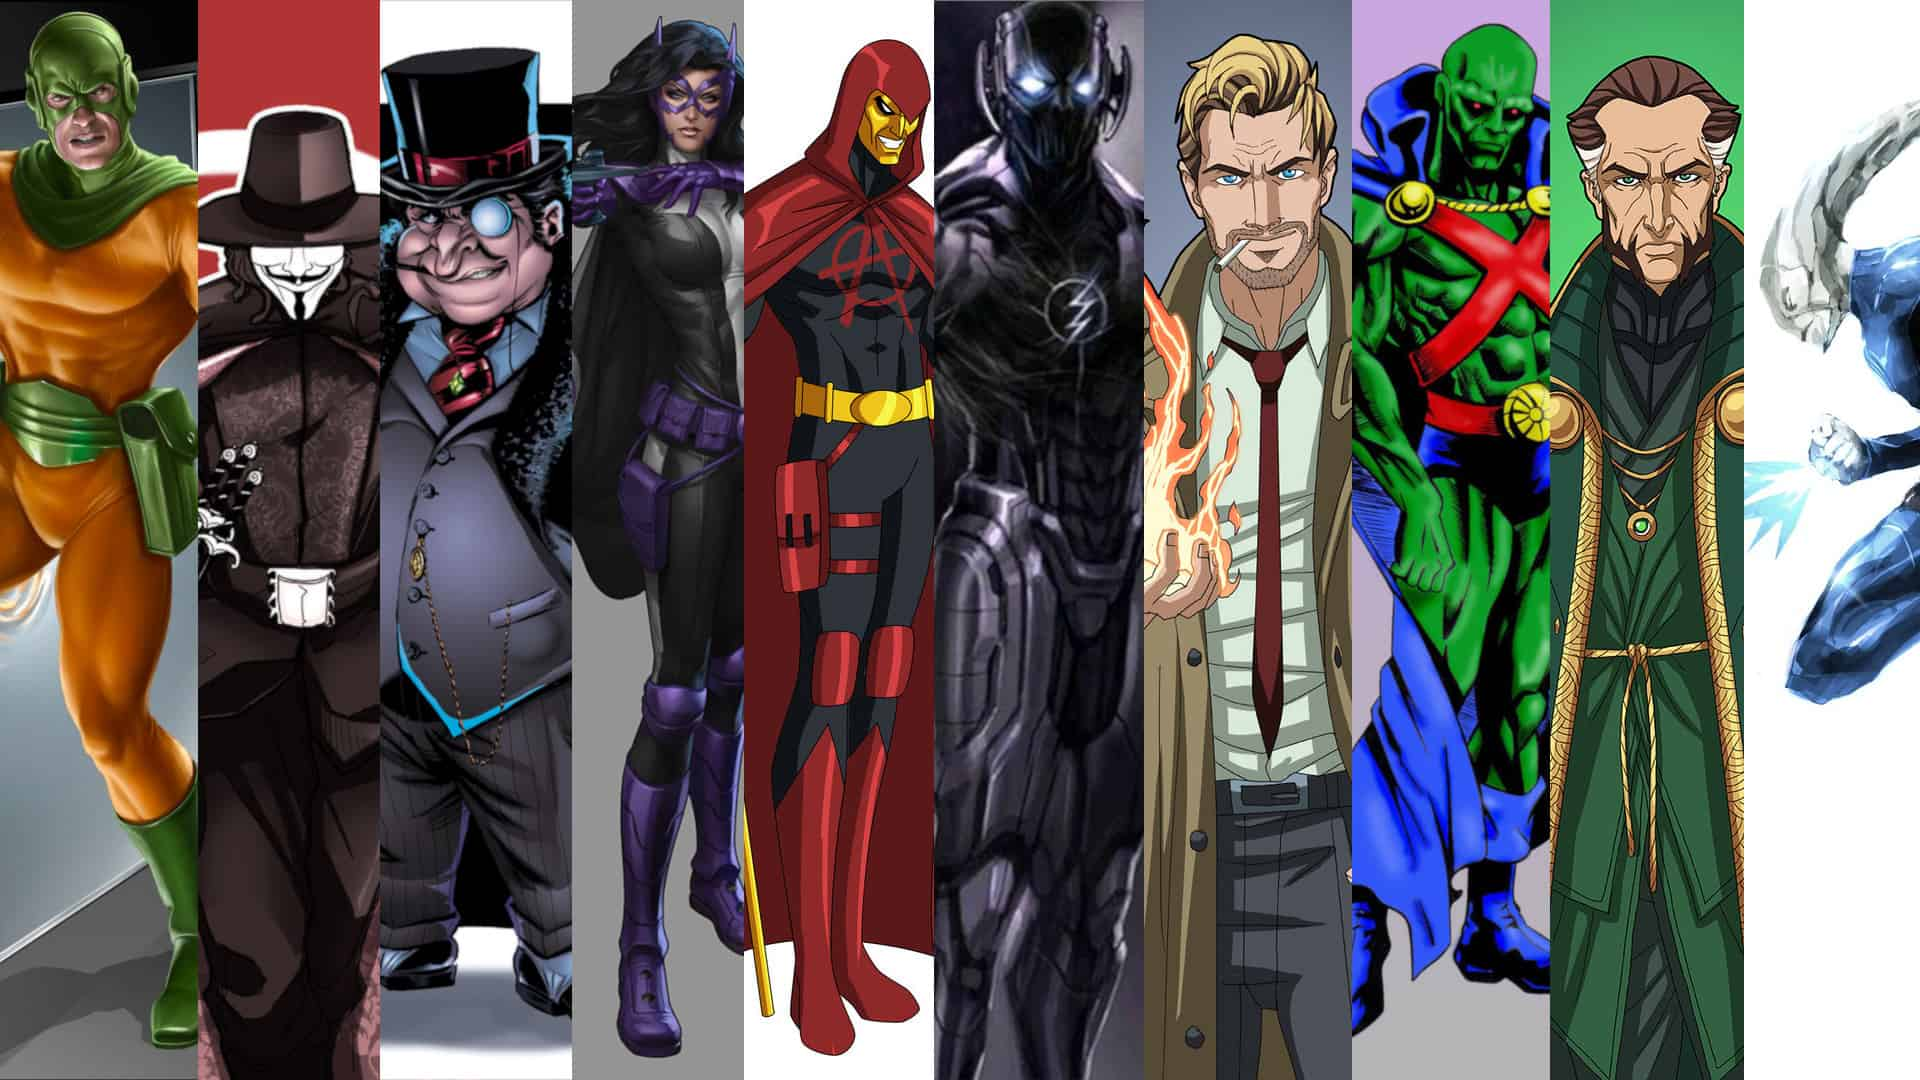 2 Or 3 Things I Know: 10 DC Characters Who Should Have Been In Injustice 2